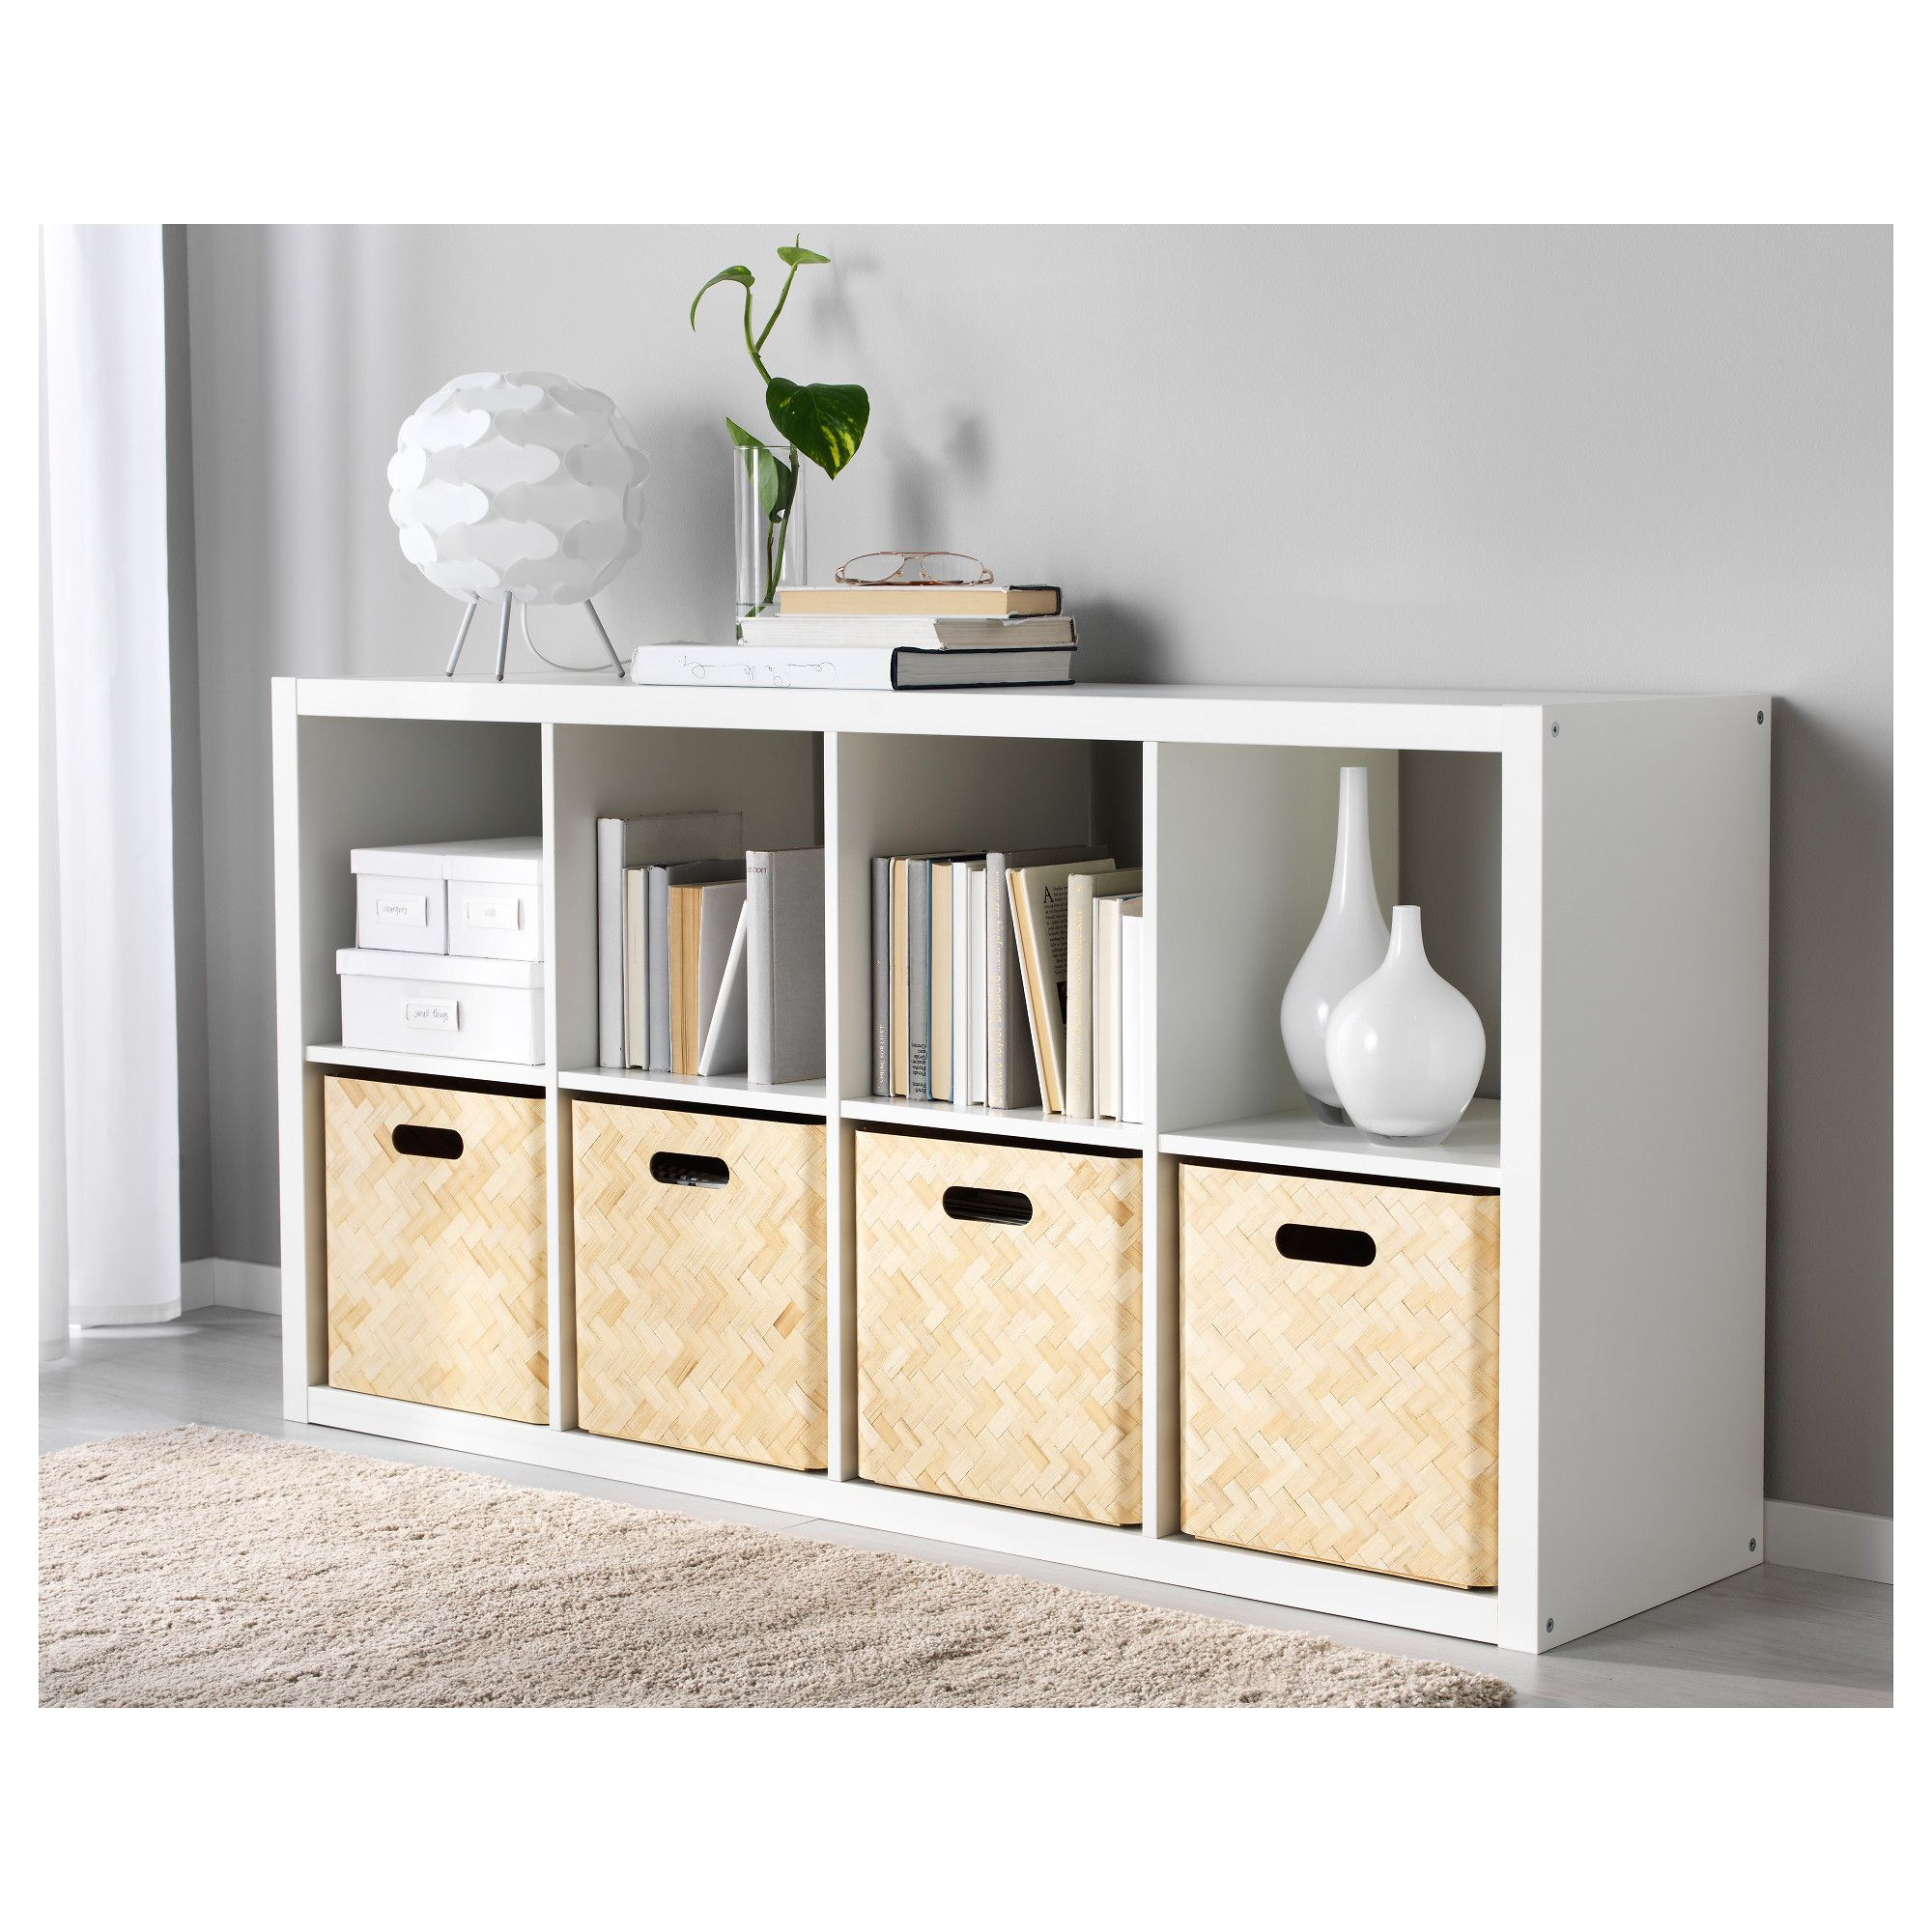 Best Furniture And Home Furnishings Ikea Shelving Unit Ikea 400 x 300